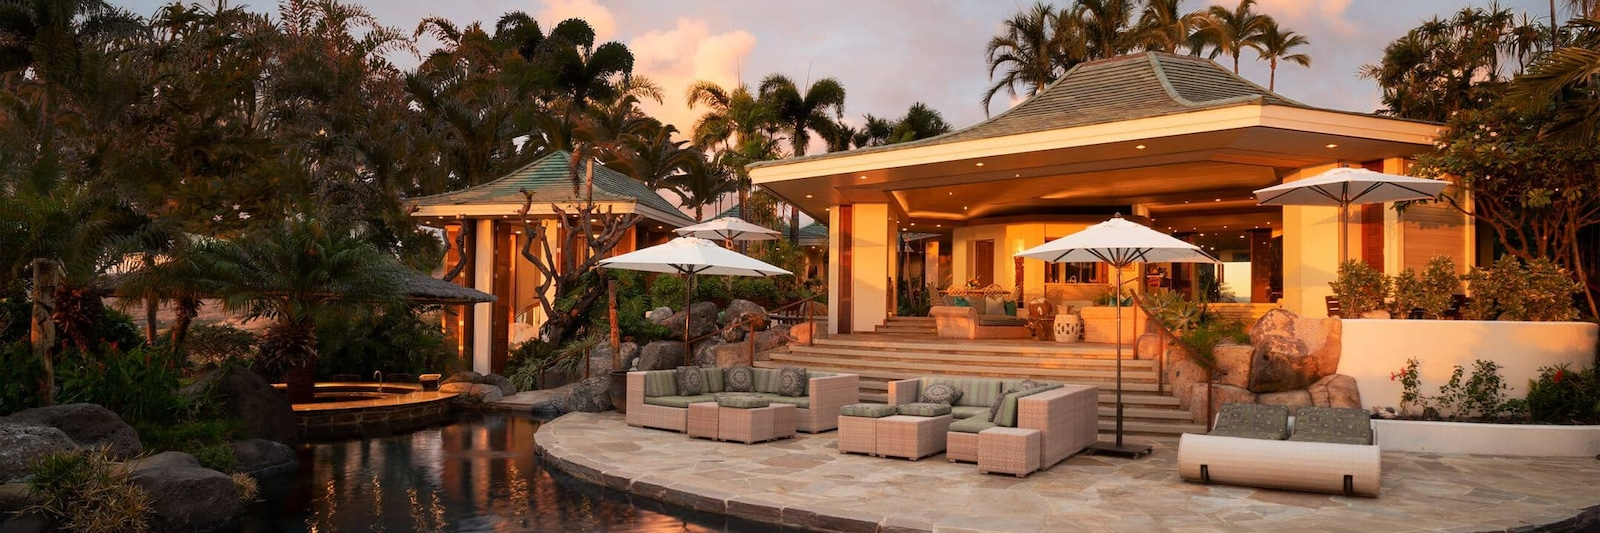 Luxury rentals in Island of Hawai'i